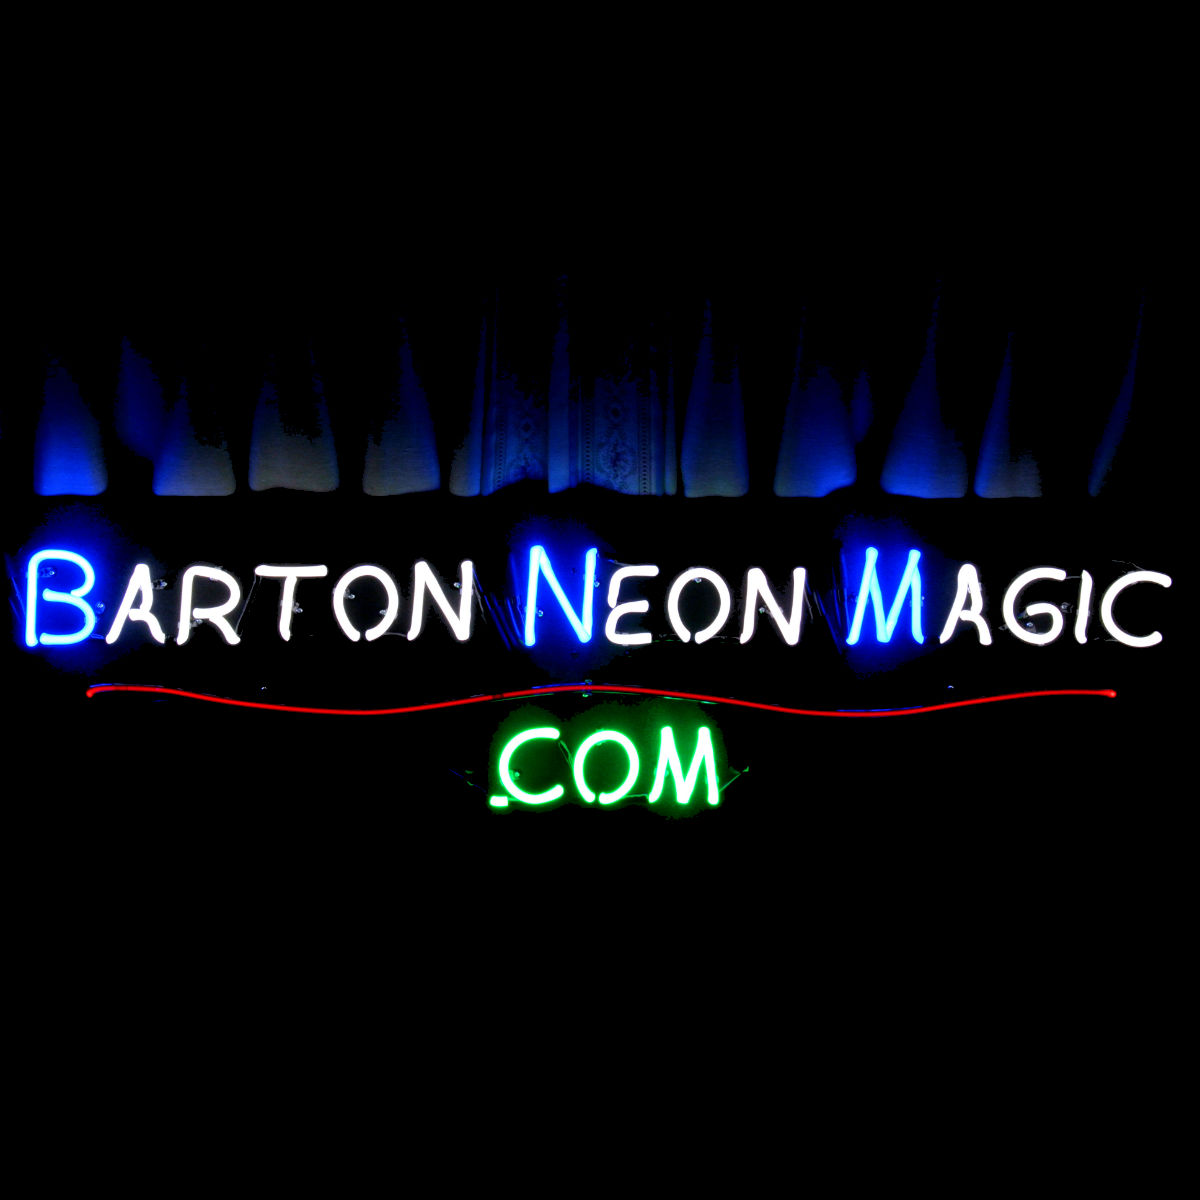 Custom Neon Artworks hand-blown by John Barton - BartonNeonMagic.com